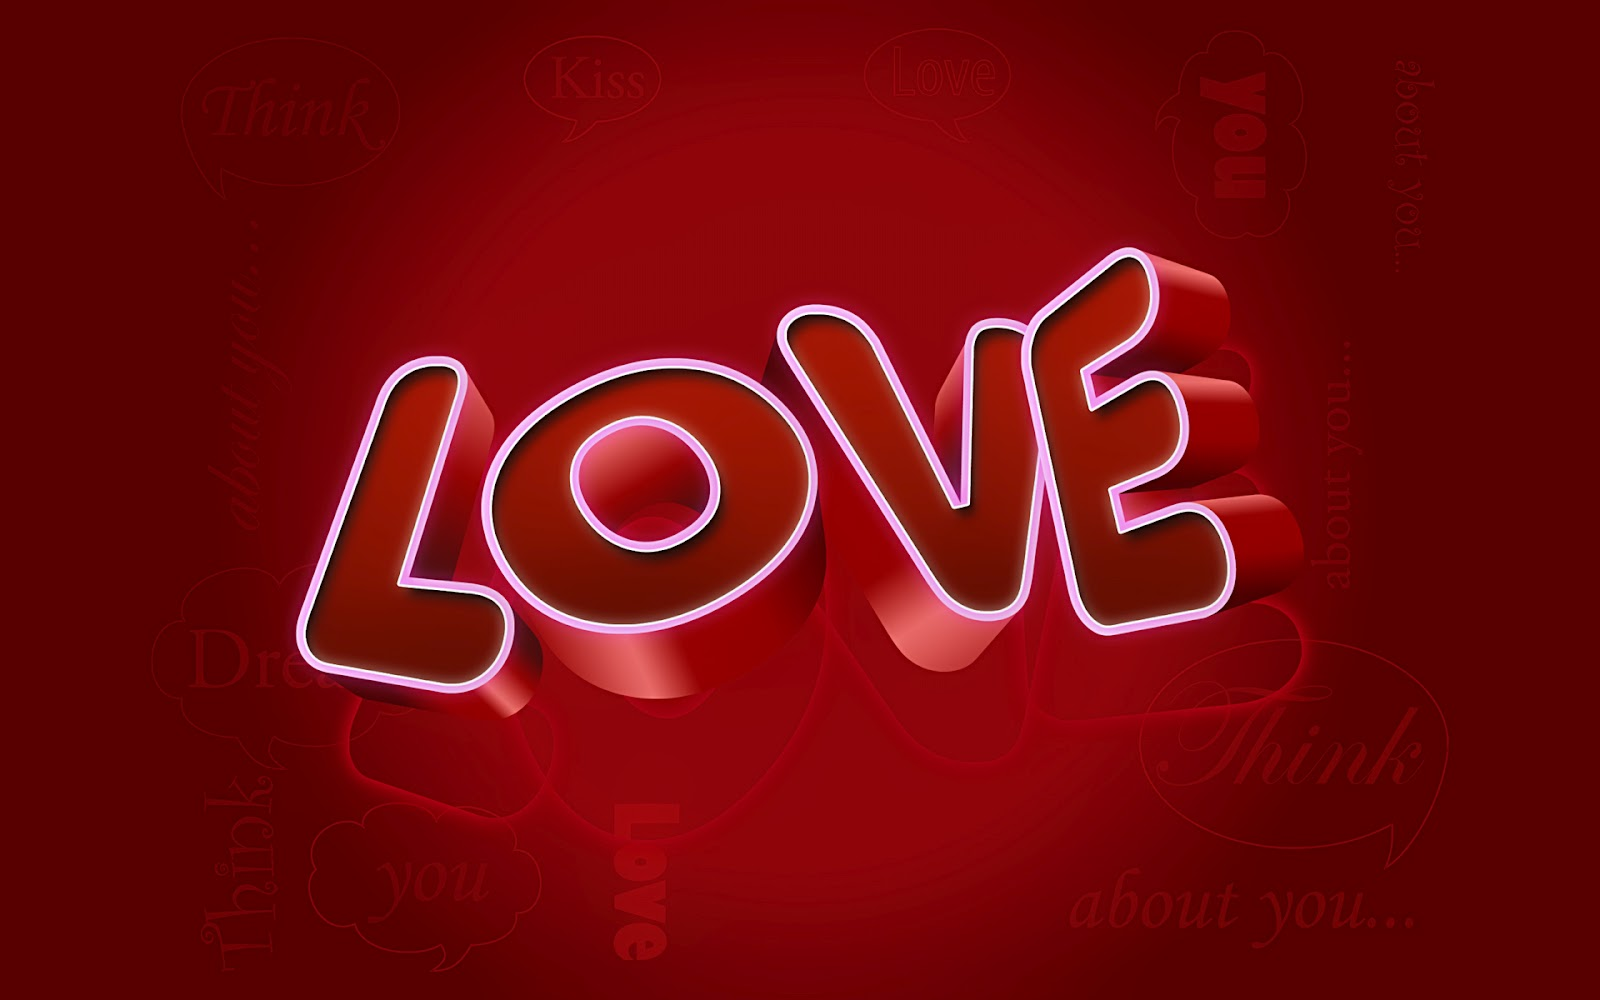 No Love Wallpaper: Desktop Wallpapers,Animals Wallpapers,Flowers Wallpapers